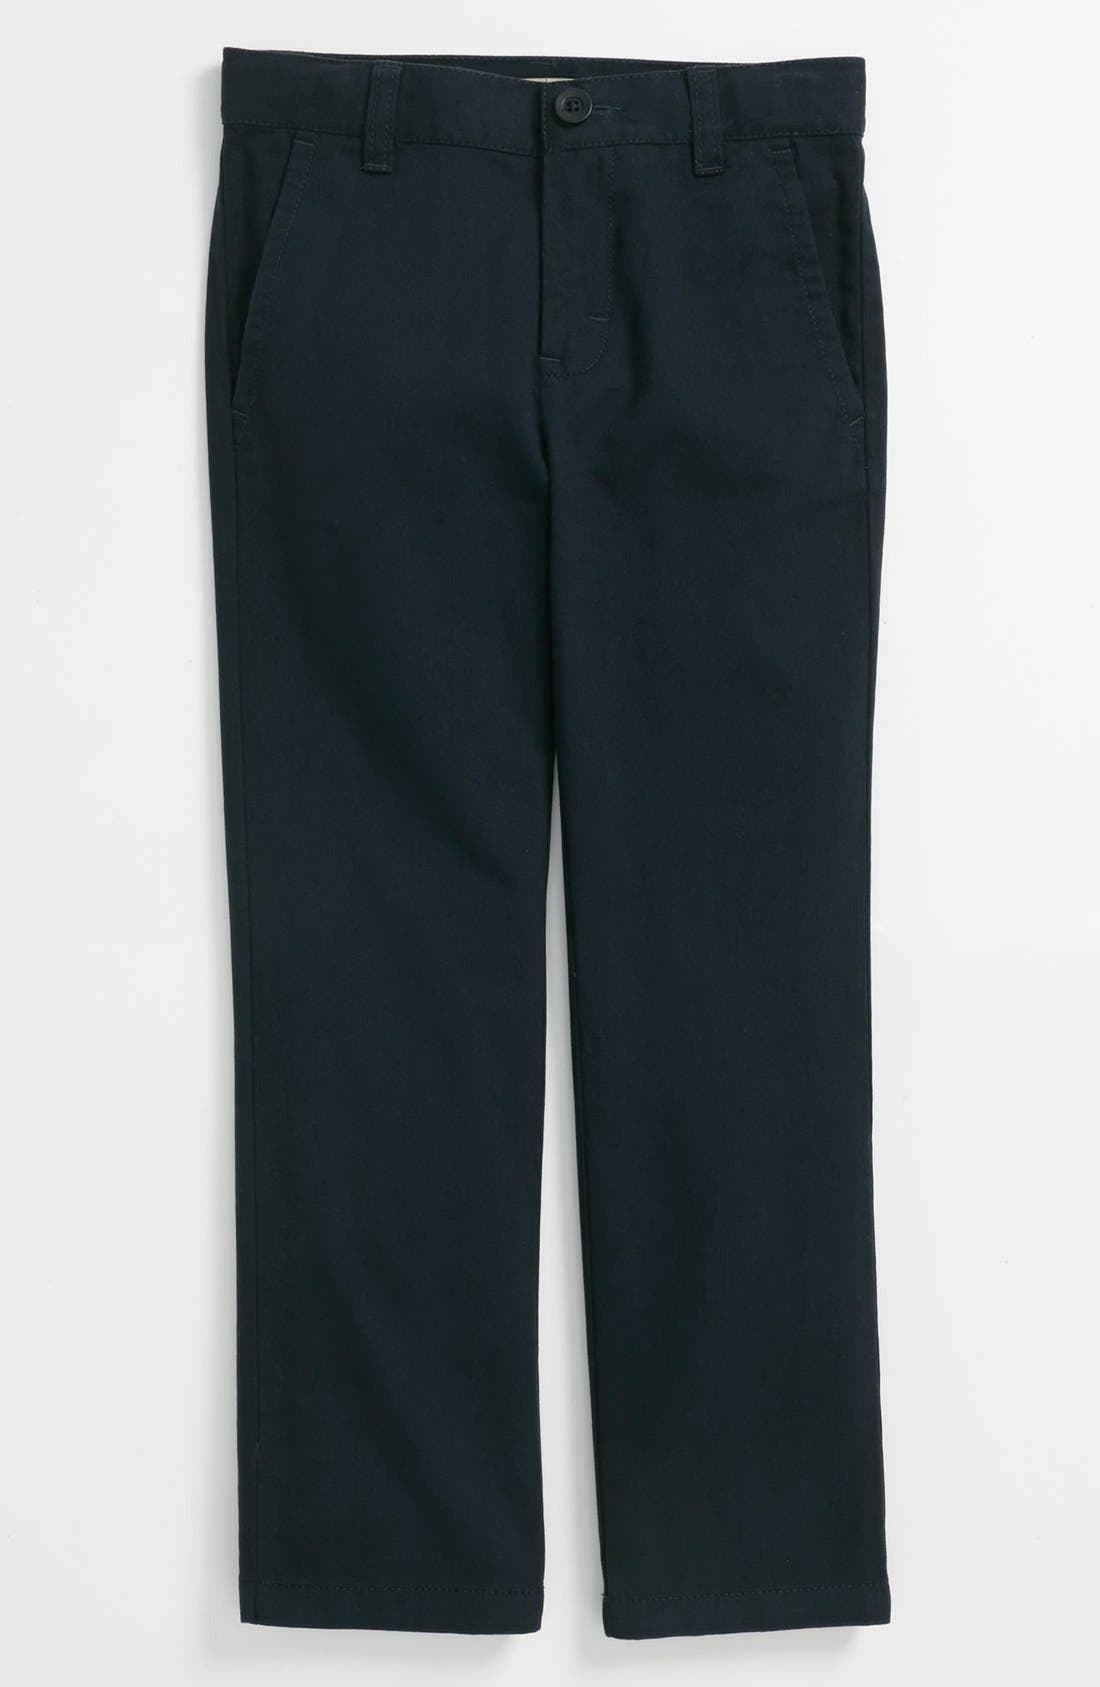 Alternate Image 1 Selected - Nordstrom 'Edward' Chinos (Little Boys & Big Boys)